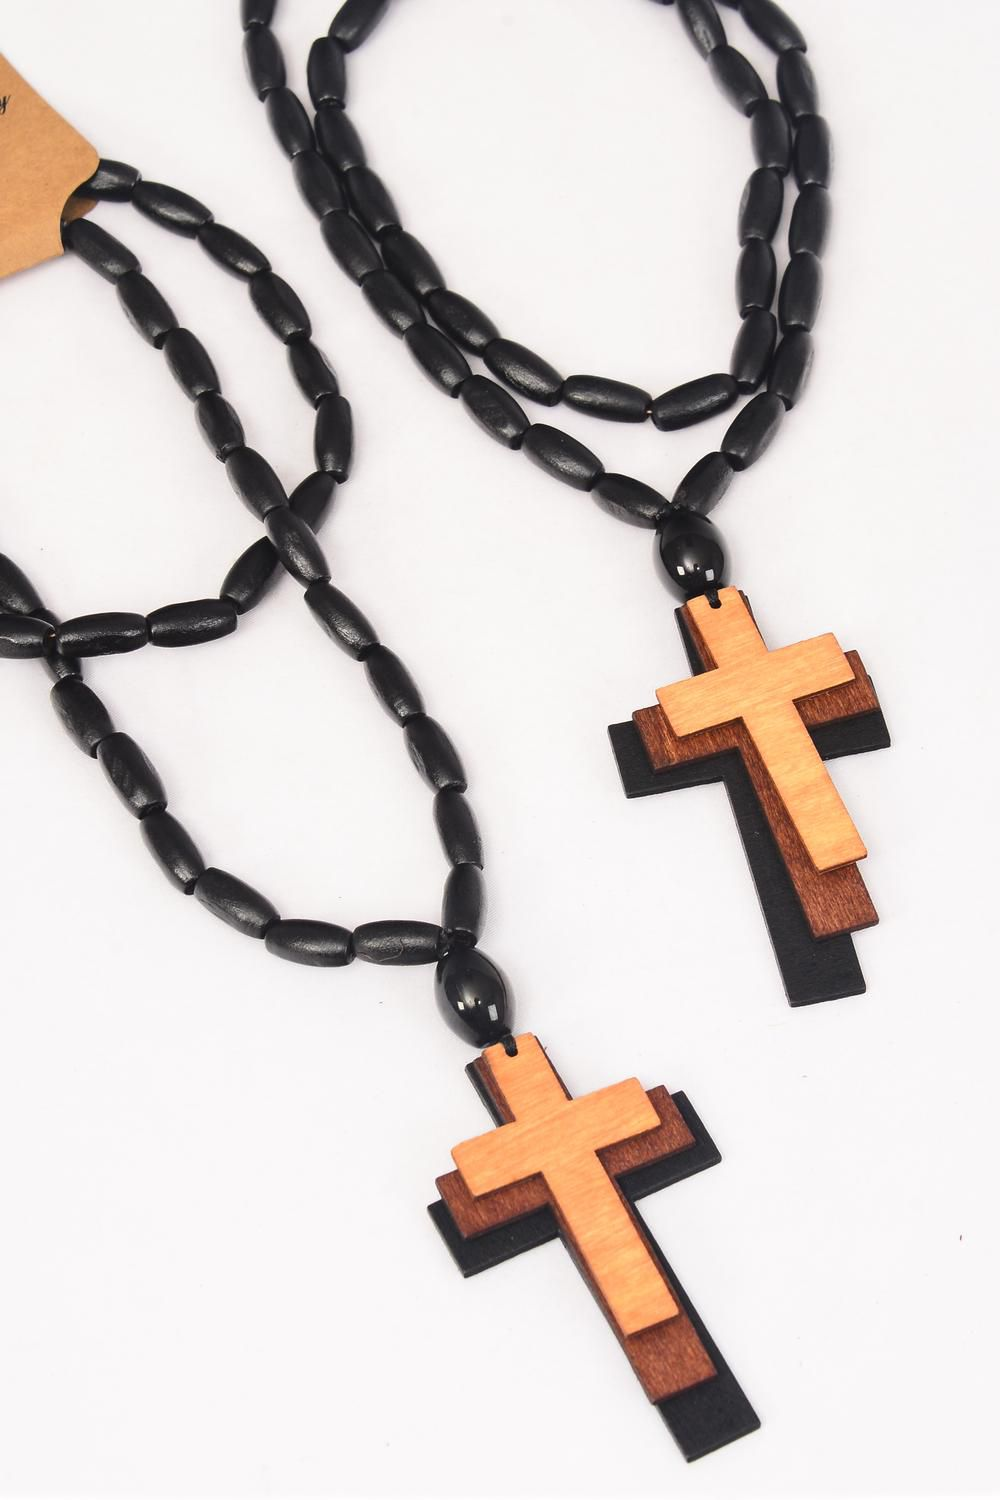 "Necklace Beads Wood Triple Cross Color Asst/DZ Cross-3""x 1.75"",Size-24"" Long,Hang Tag & OPP Bag & UPC Code"